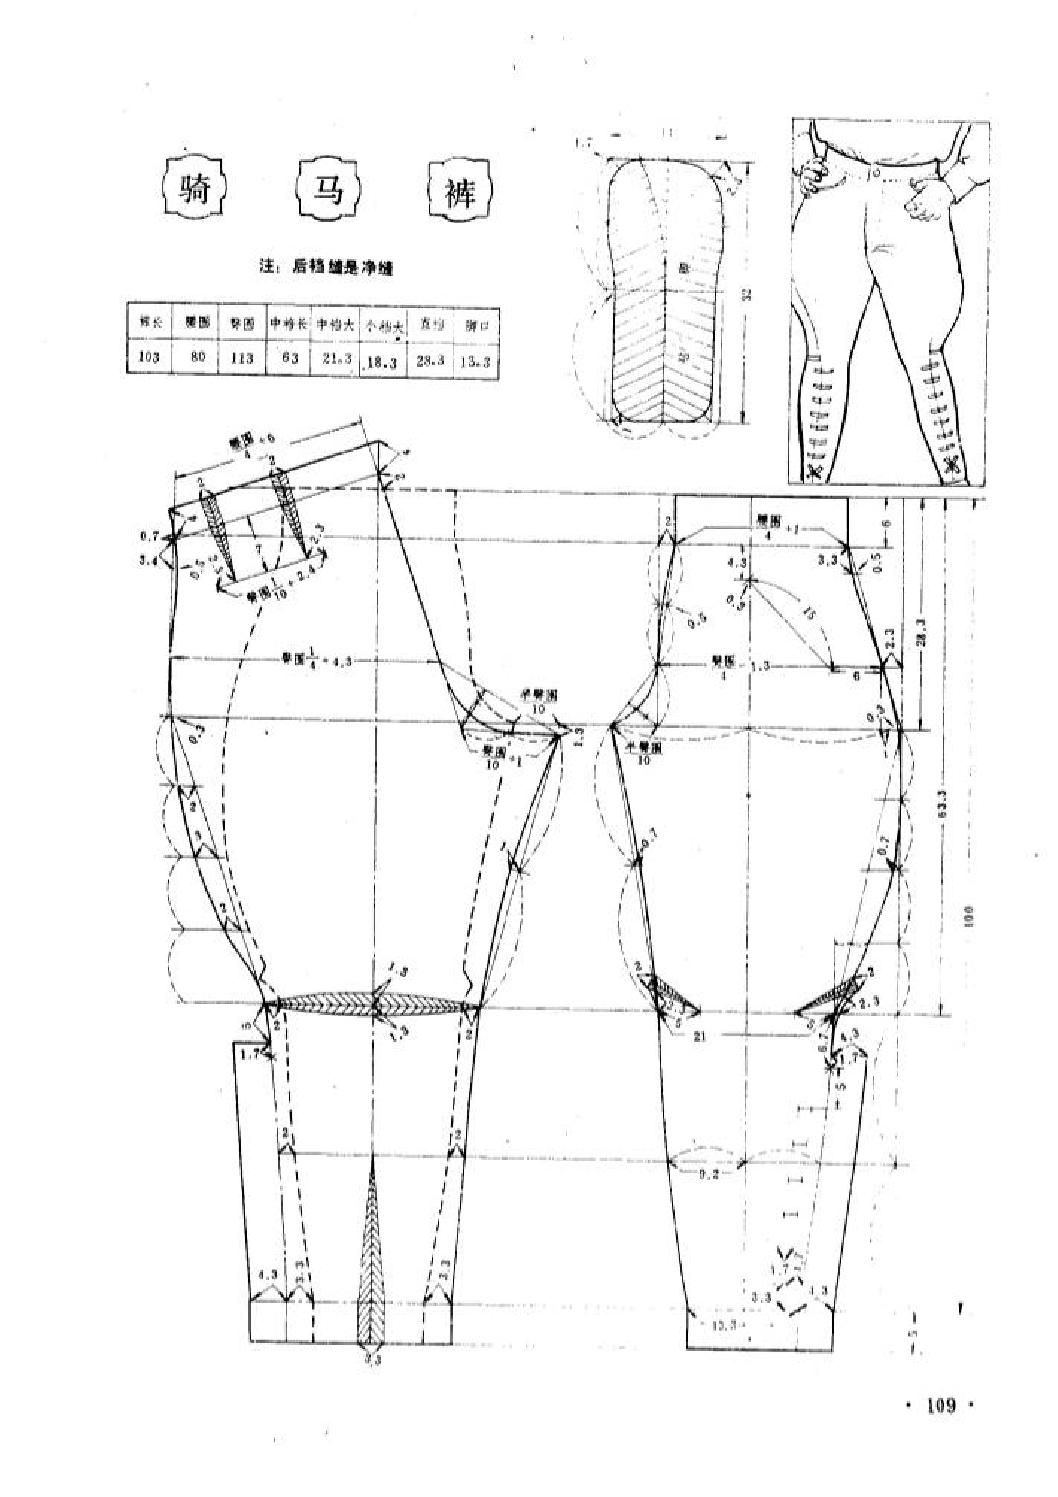 1989 Shanghai clothing styles and cutting | patern men | Pinterest ...